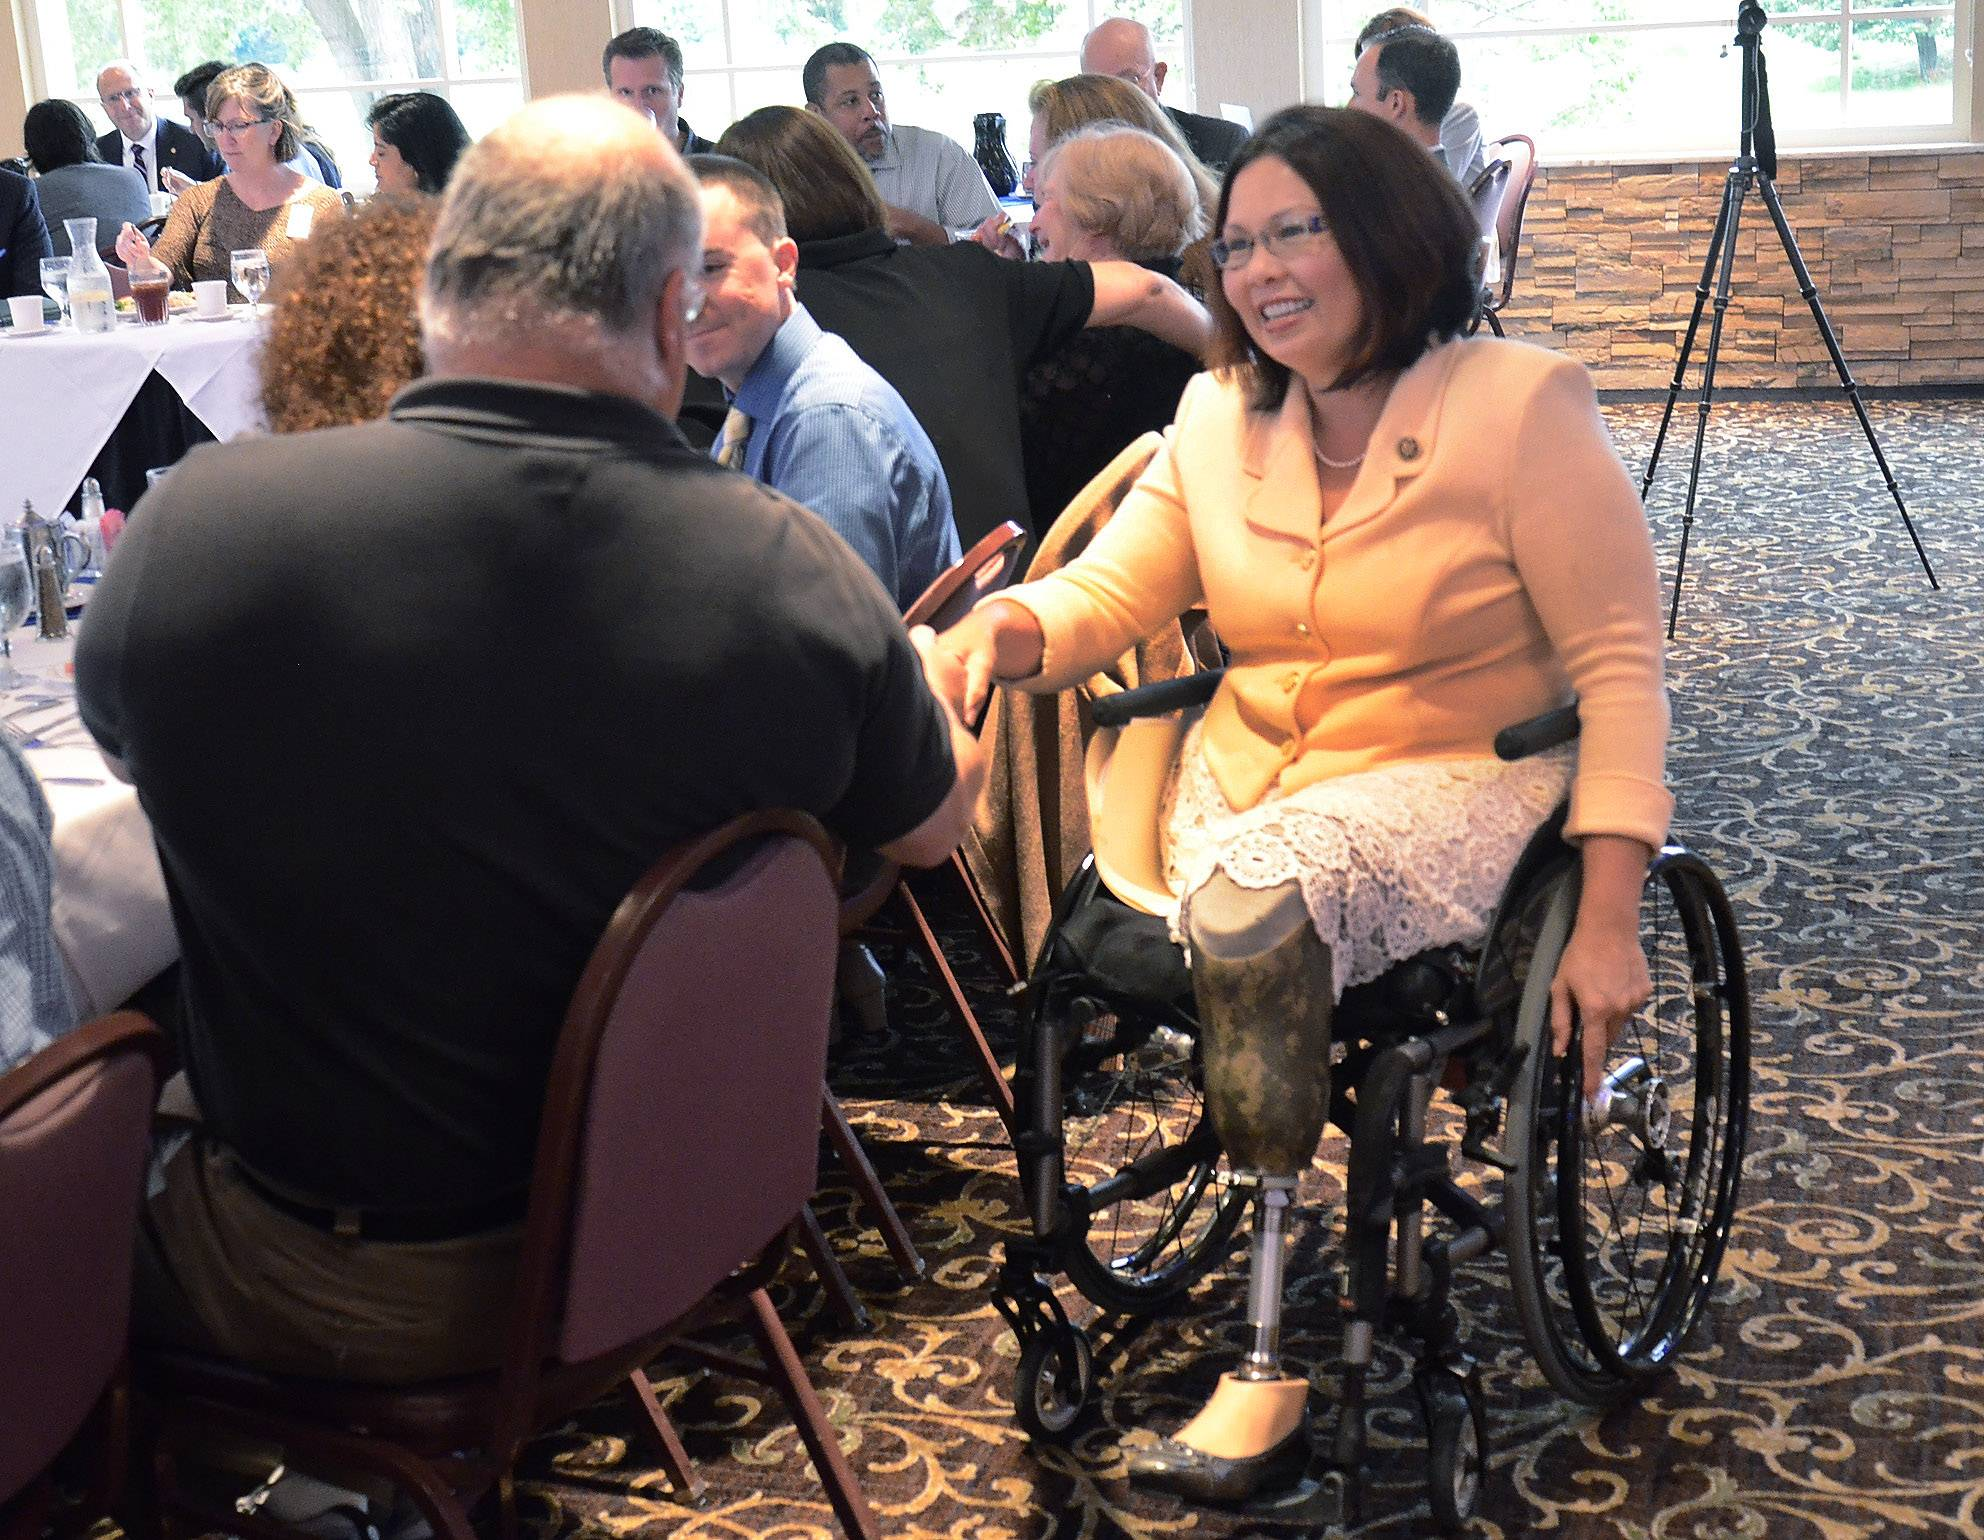 U.S. Rep. Tammy Duckworth visits with members before speaking at the Schaumburg Business Association's Legislative Affairs luncheon.